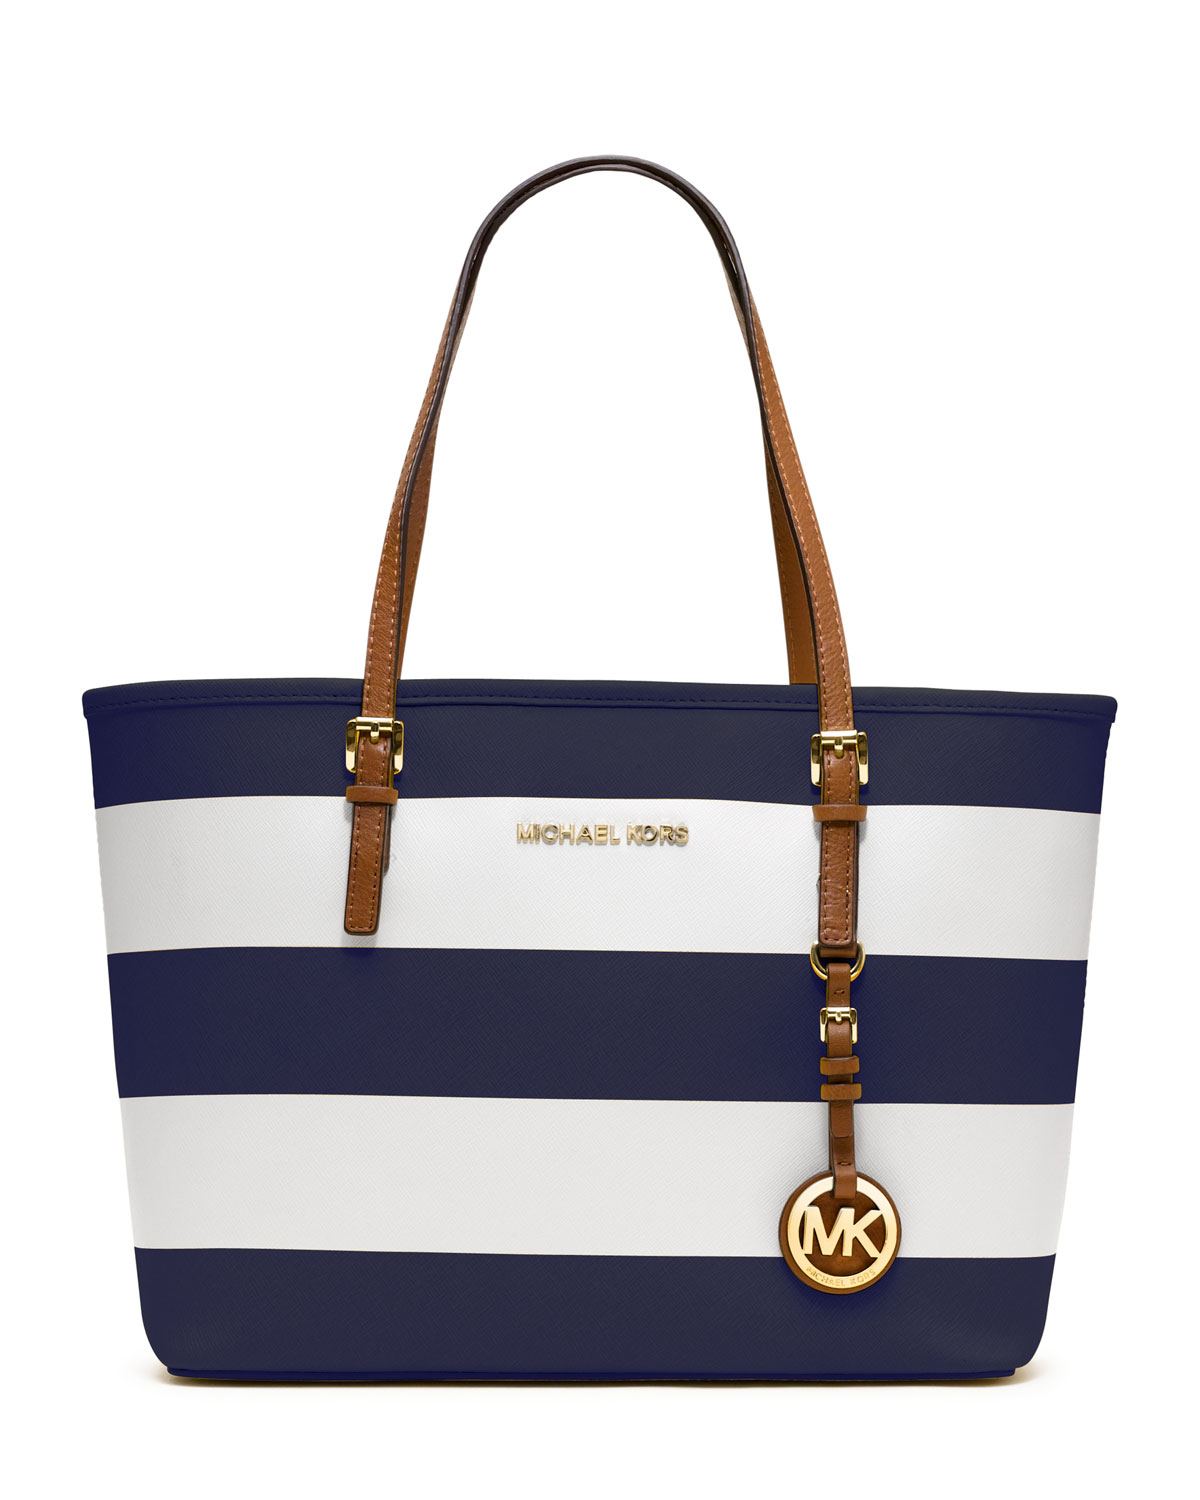 michael michael kors small jet set striped travel tote in blue navy white lyst. Black Bedroom Furniture Sets. Home Design Ideas